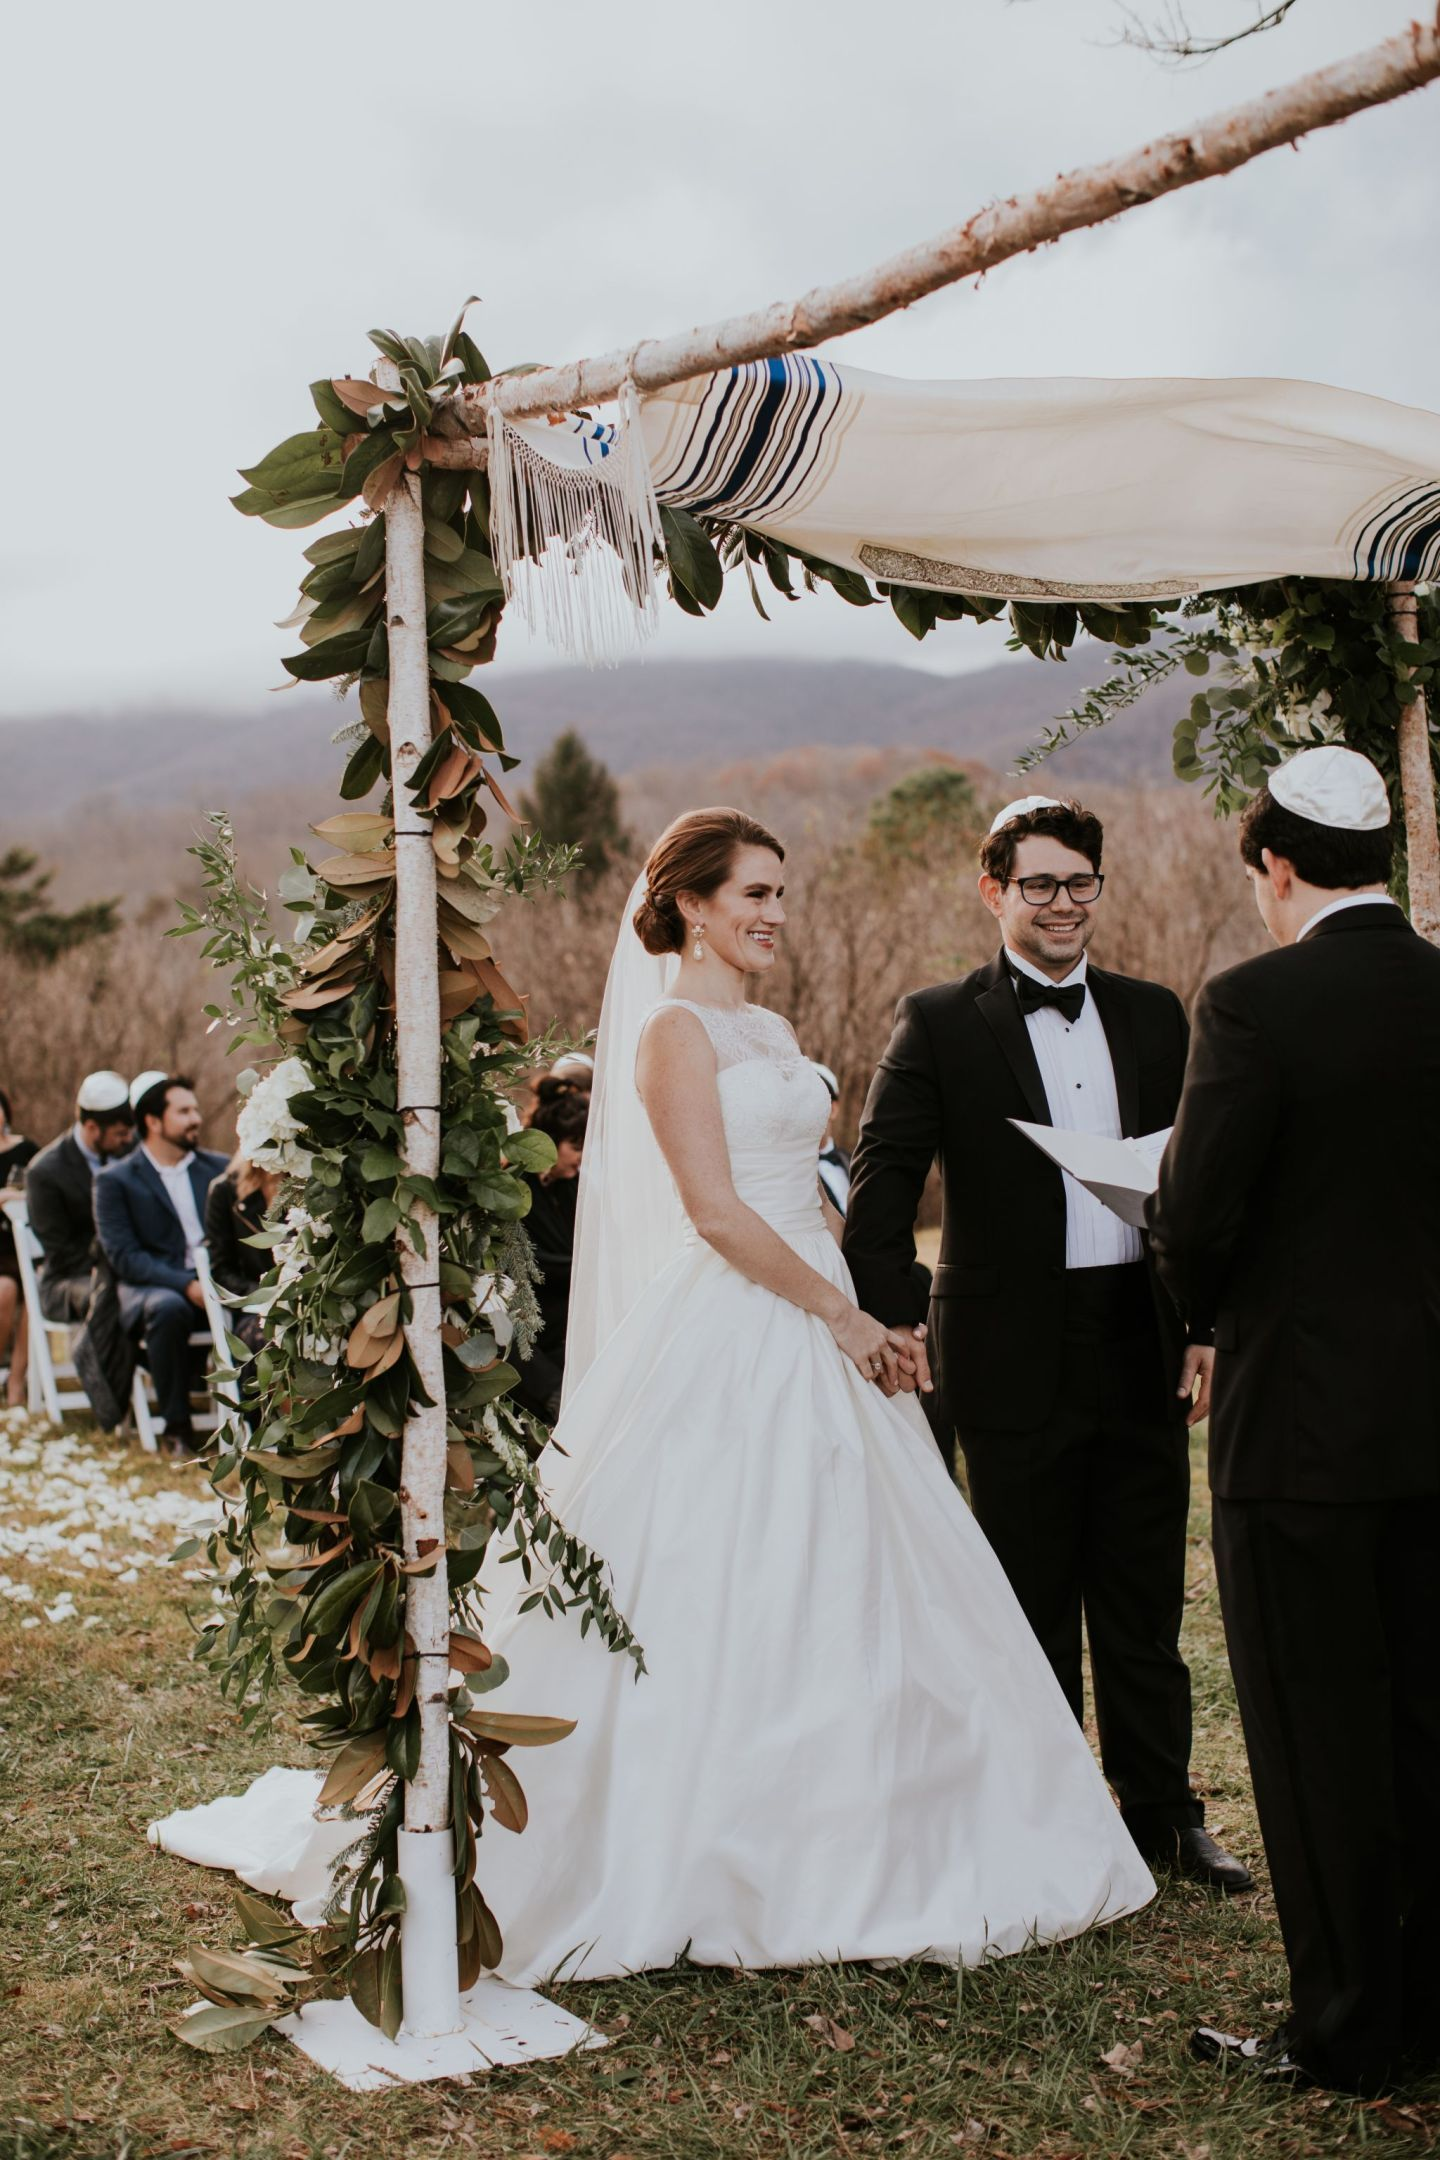 How We Planned Our Jewish Wedding Ceremony Heather Bien In 2020 Jewish Wedding Ceremony Jewish Wedding Jewish Wedding Traditions